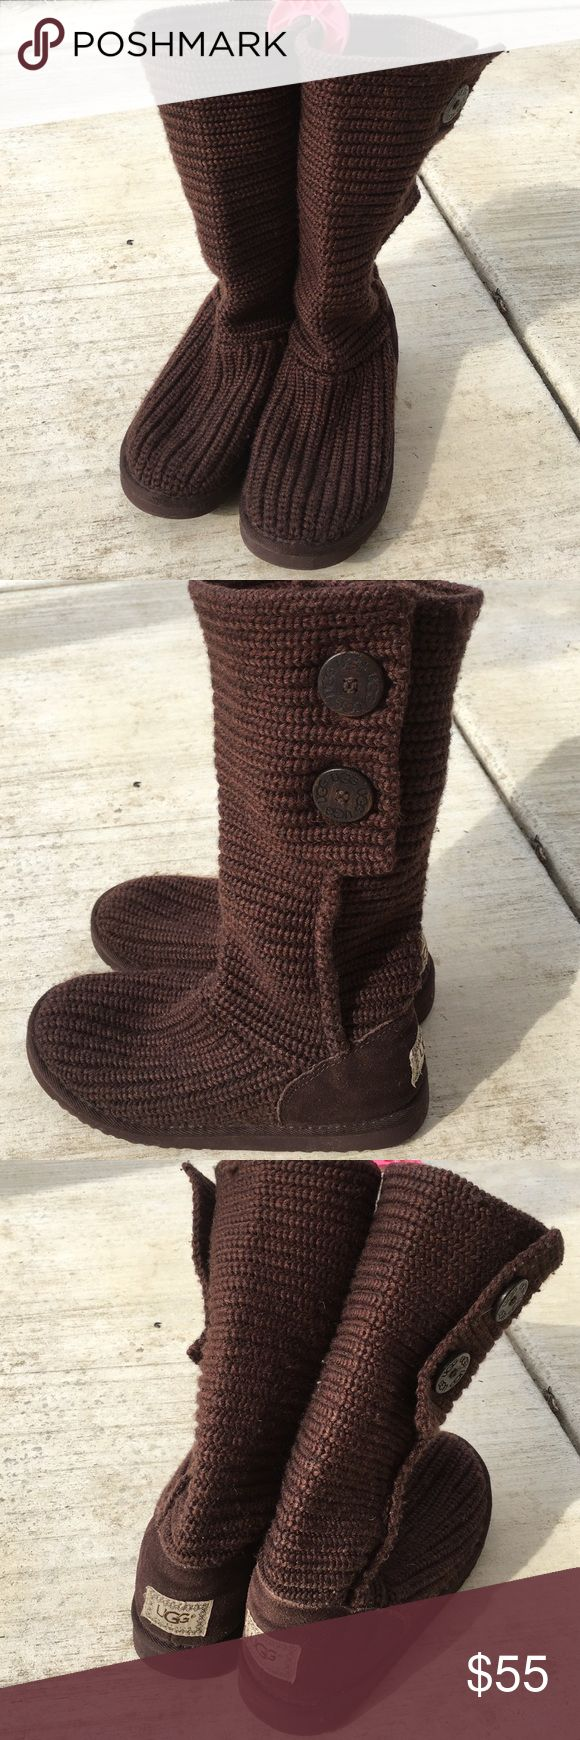 🎉🎊 Price Drop! UGG Knitted Boots Sz 5 in Youth Great boots for those not so cold months. You can fold it over for a different style. I've had this boots for years. This is a size 5 in Youth. I'm a true 6 in Women's and I have a little more than a wiggle room with this boots. Please look at the pictures closely. No stains or markings. There are lints as it is knitted. This can be taken cared of with a lint shaver. Comes from a smoke free home! I do live with furbabies. Price reflects age…